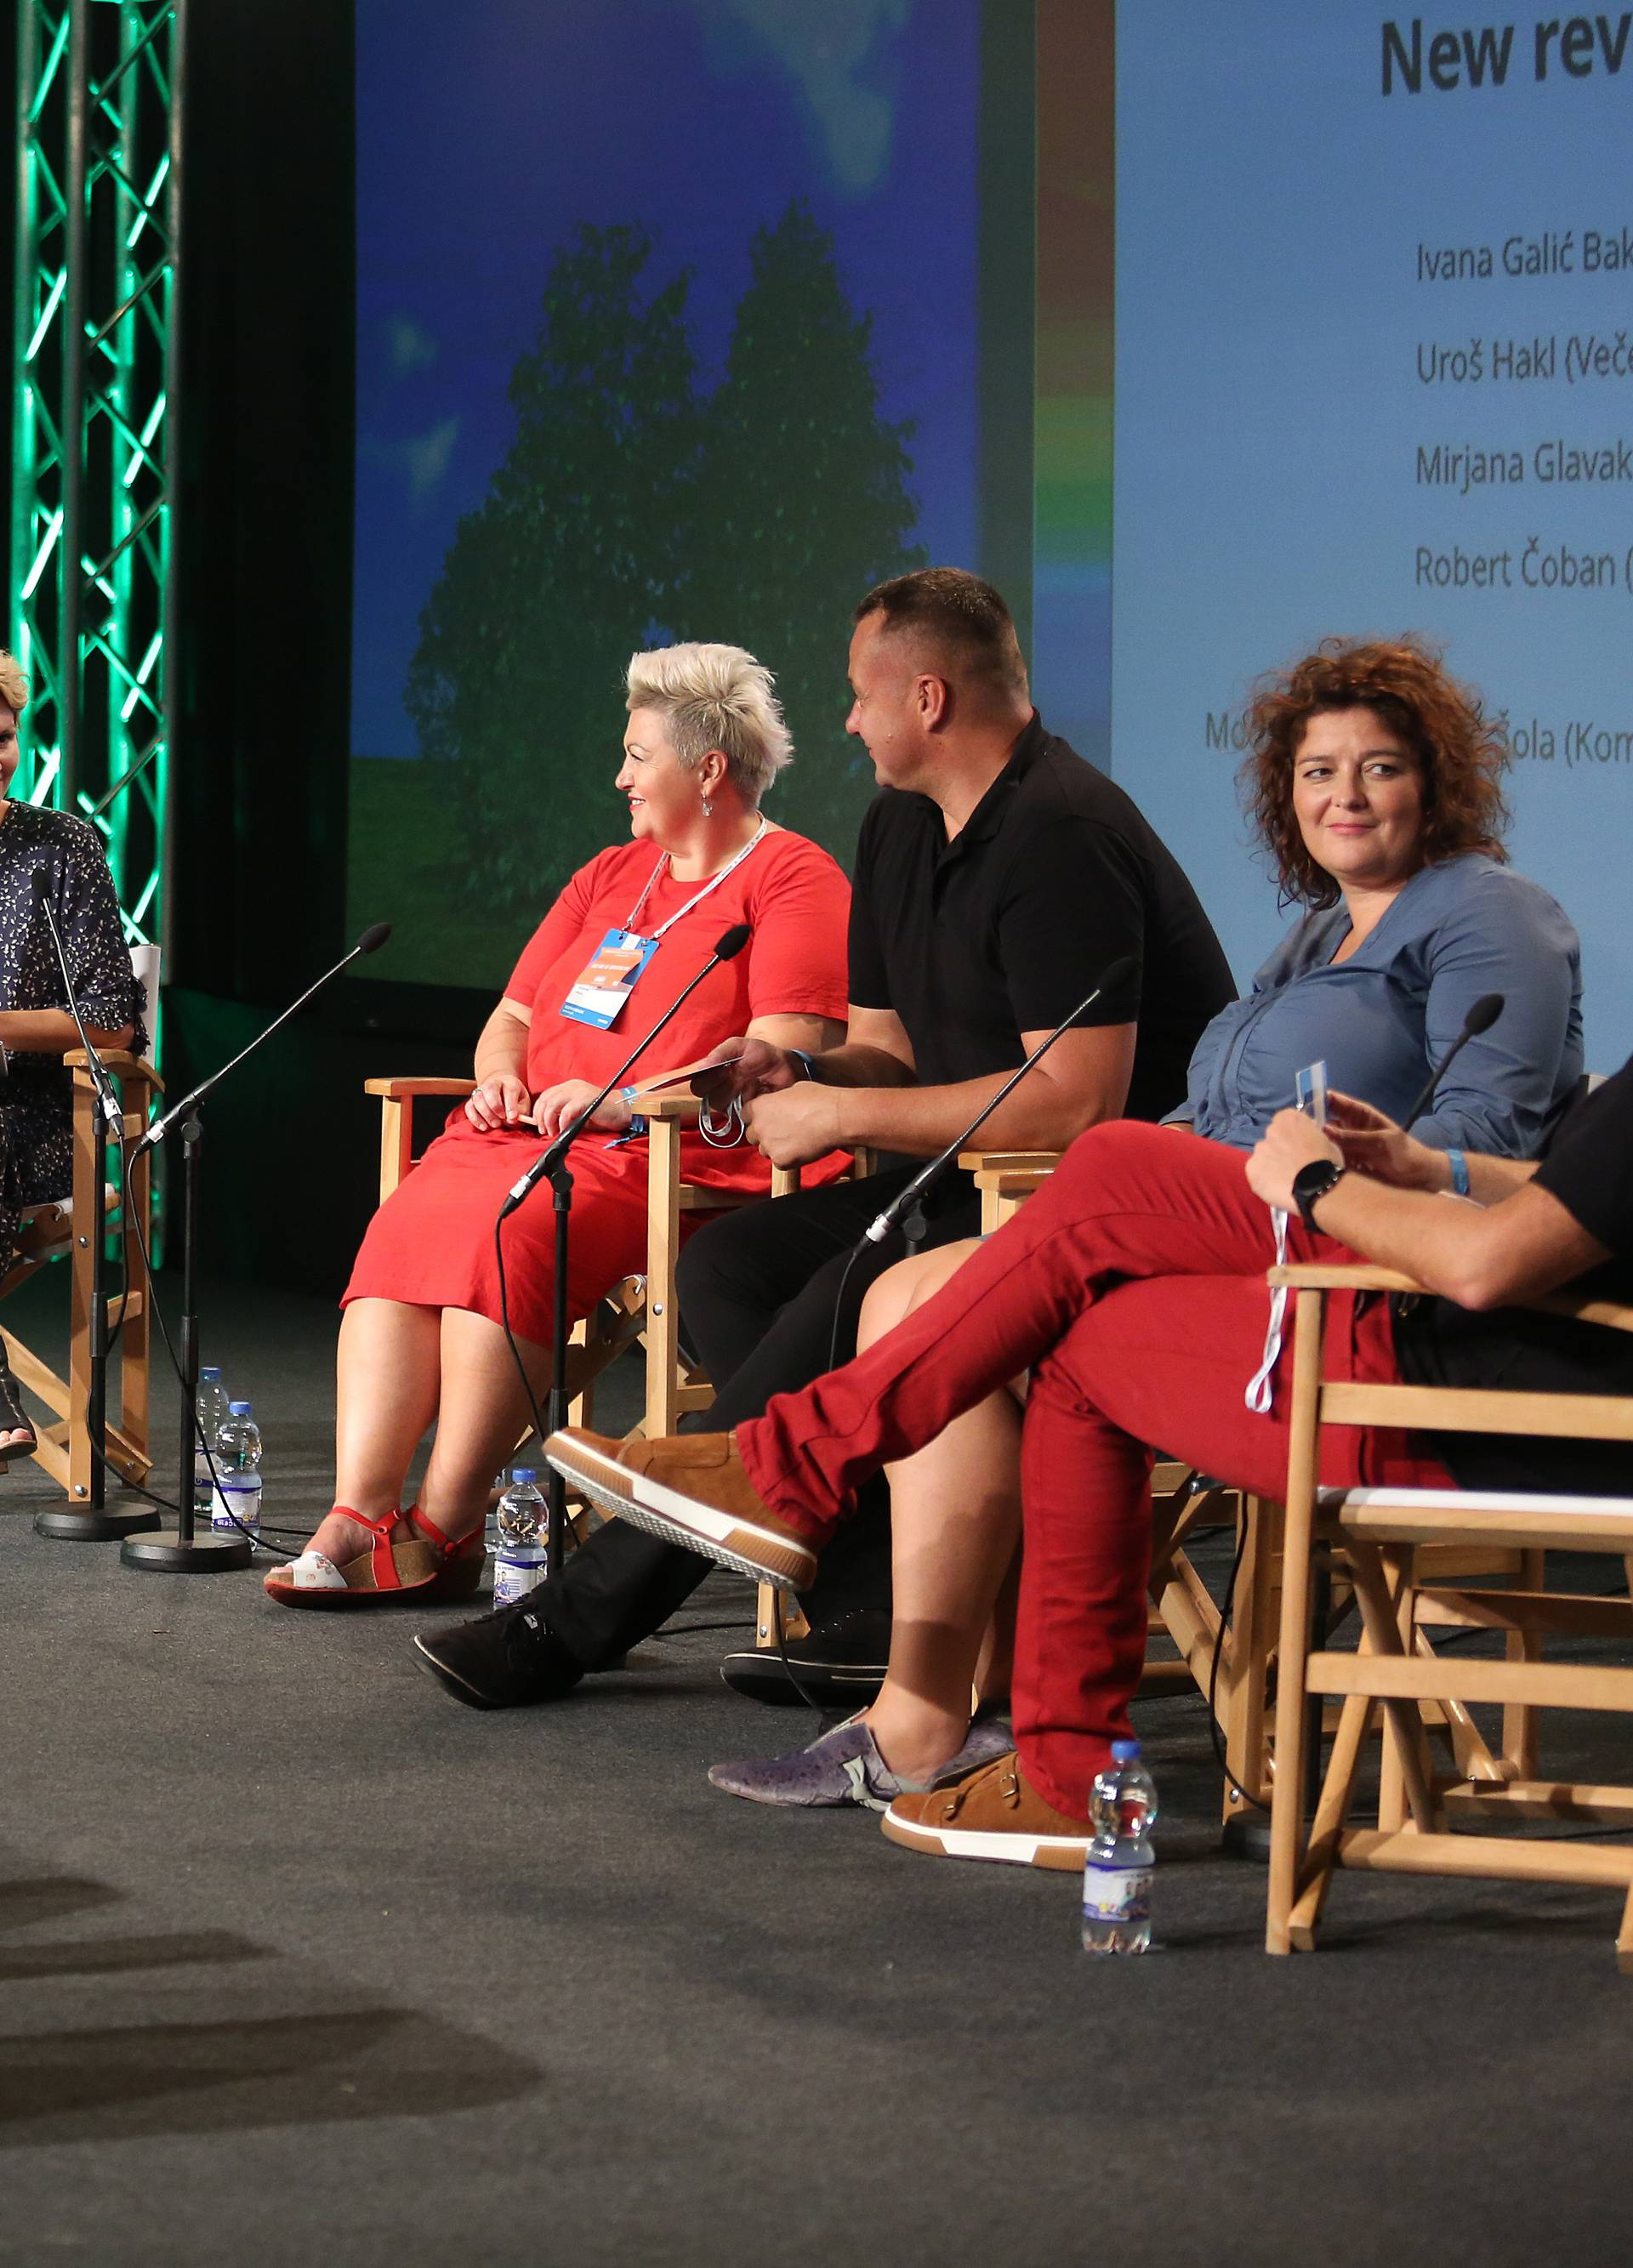 Rovinj: Weekend Media Festival, panel diskusija New revenue projekti